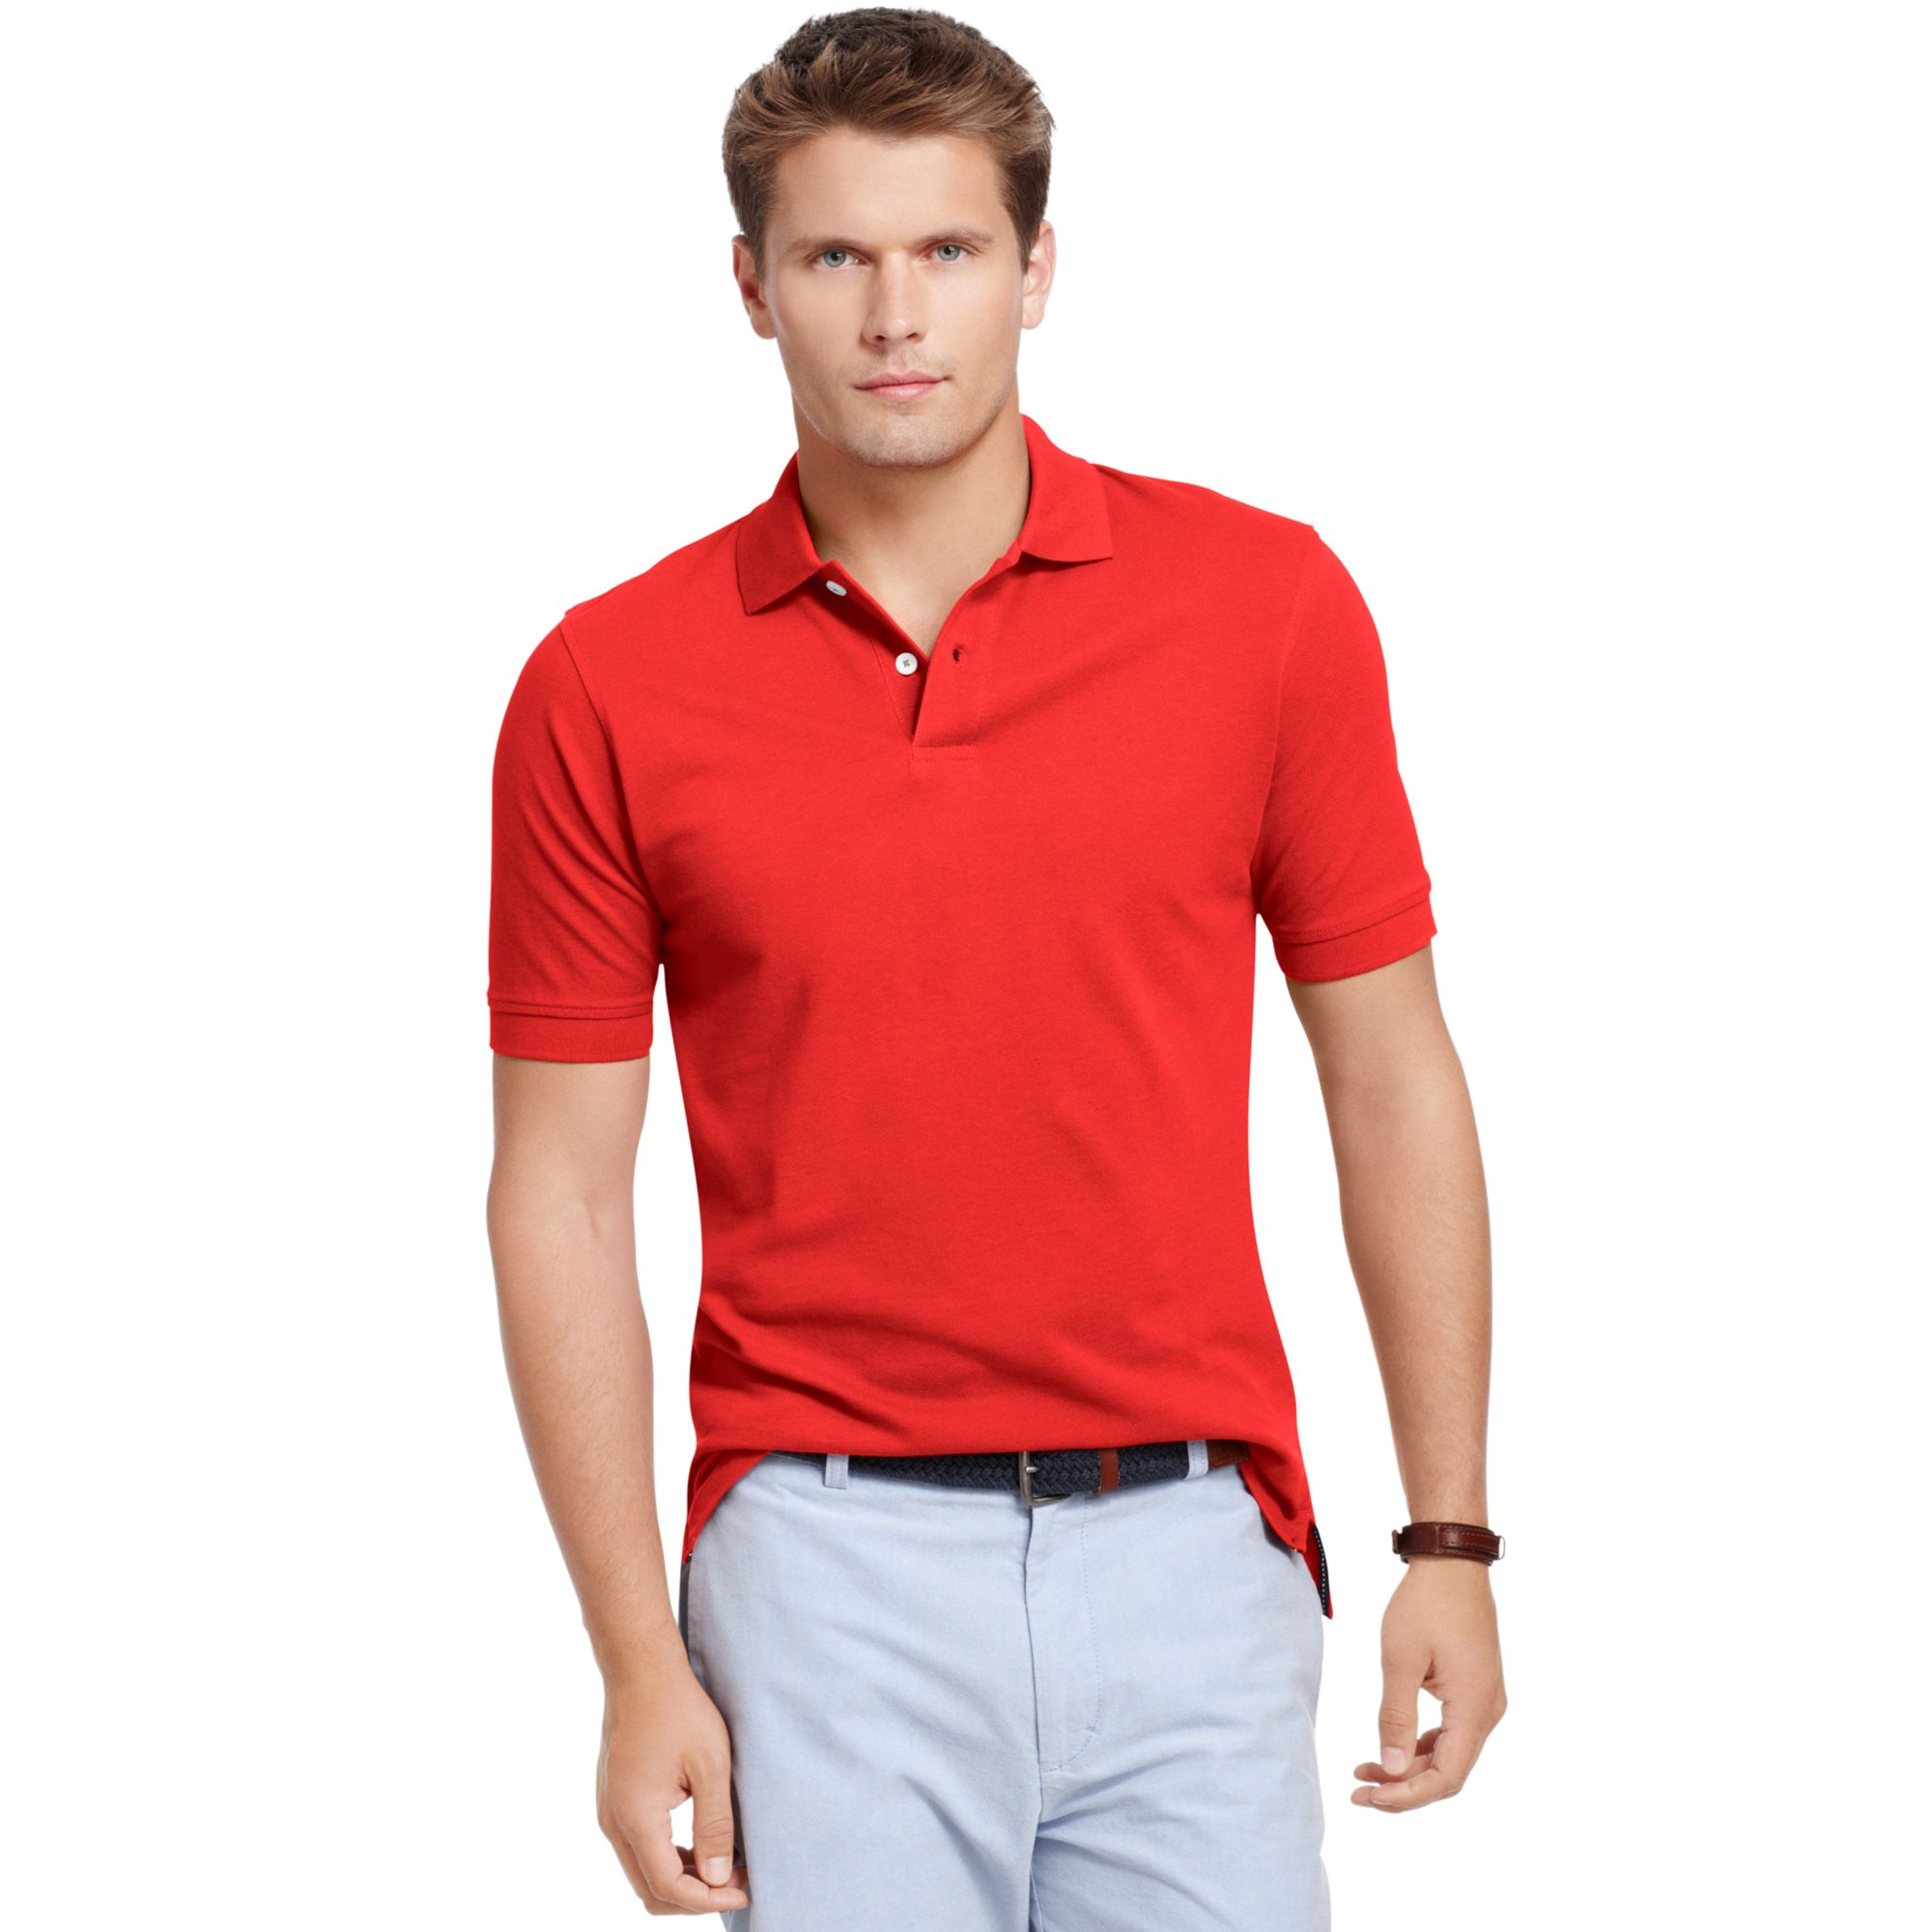 Lyst izod pima cotton polo shirt in red for men Man in polo shirt